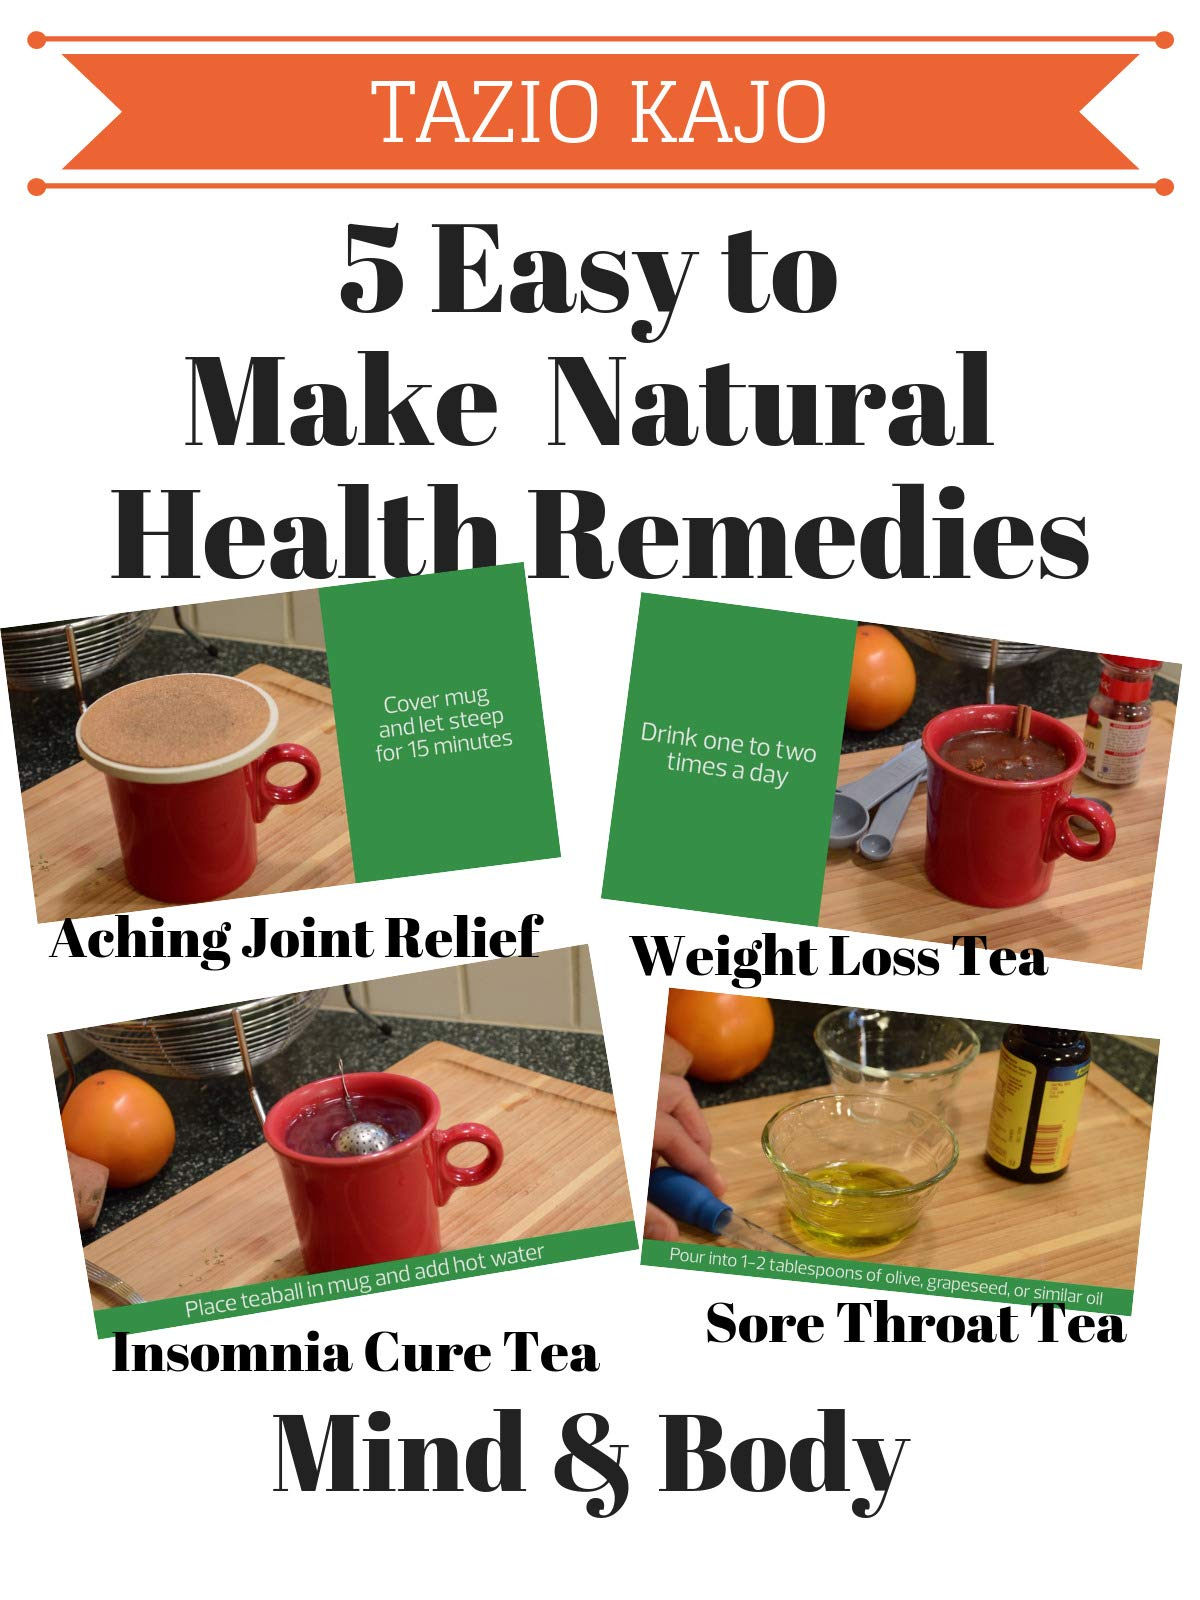 5 Easy to Make Natural Health Remedies